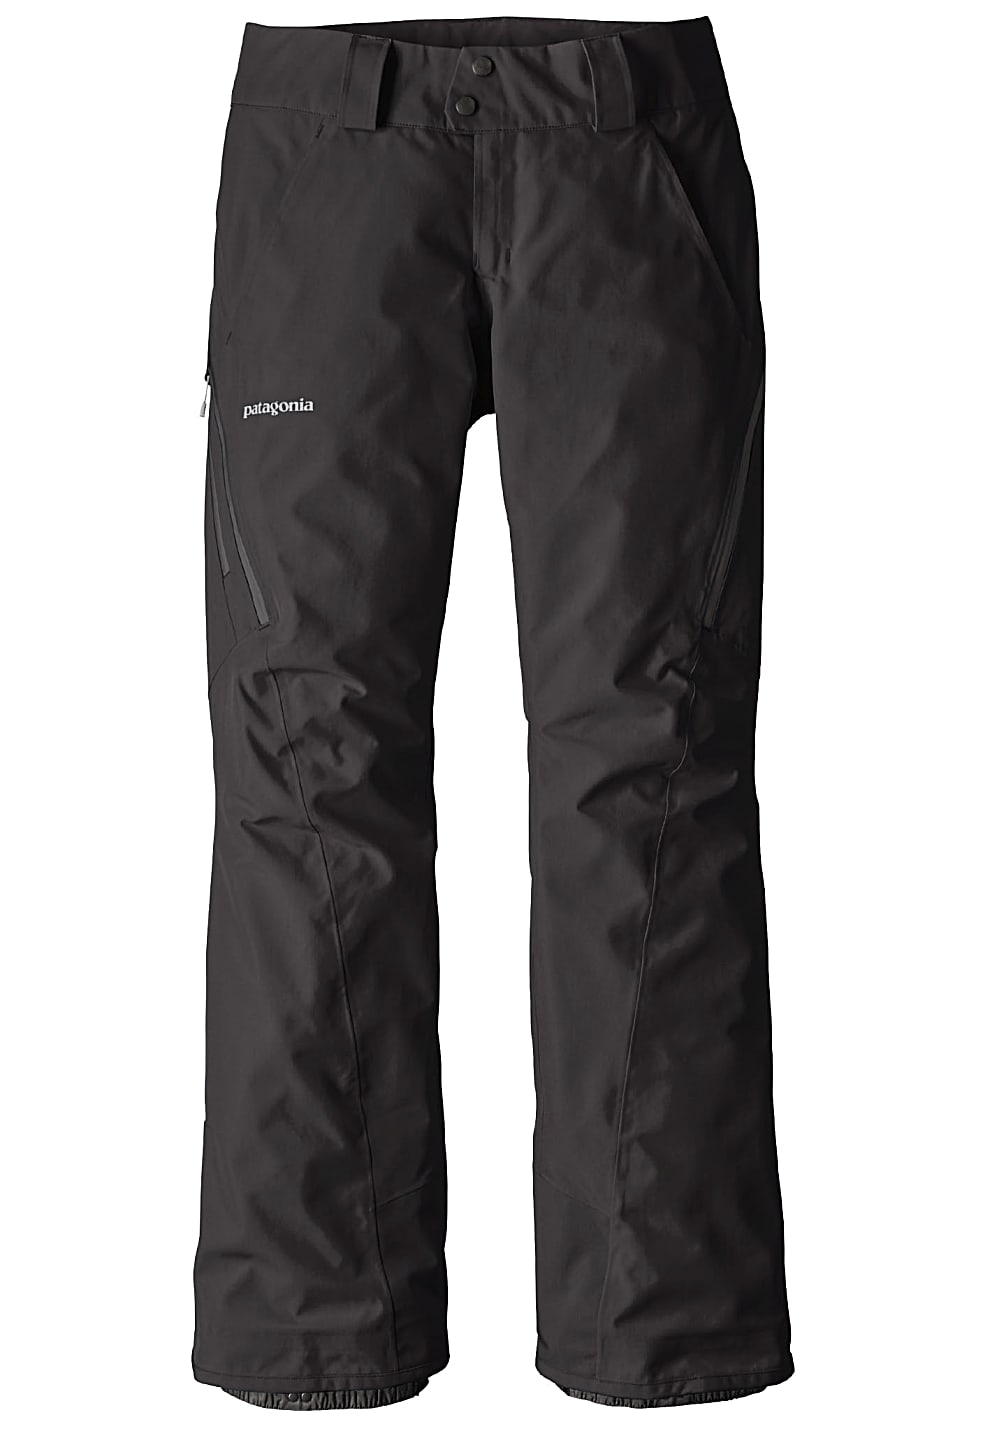 Patagonia Insulated Powder Bowl - Snowboardhose für Damen - Schwarz - L